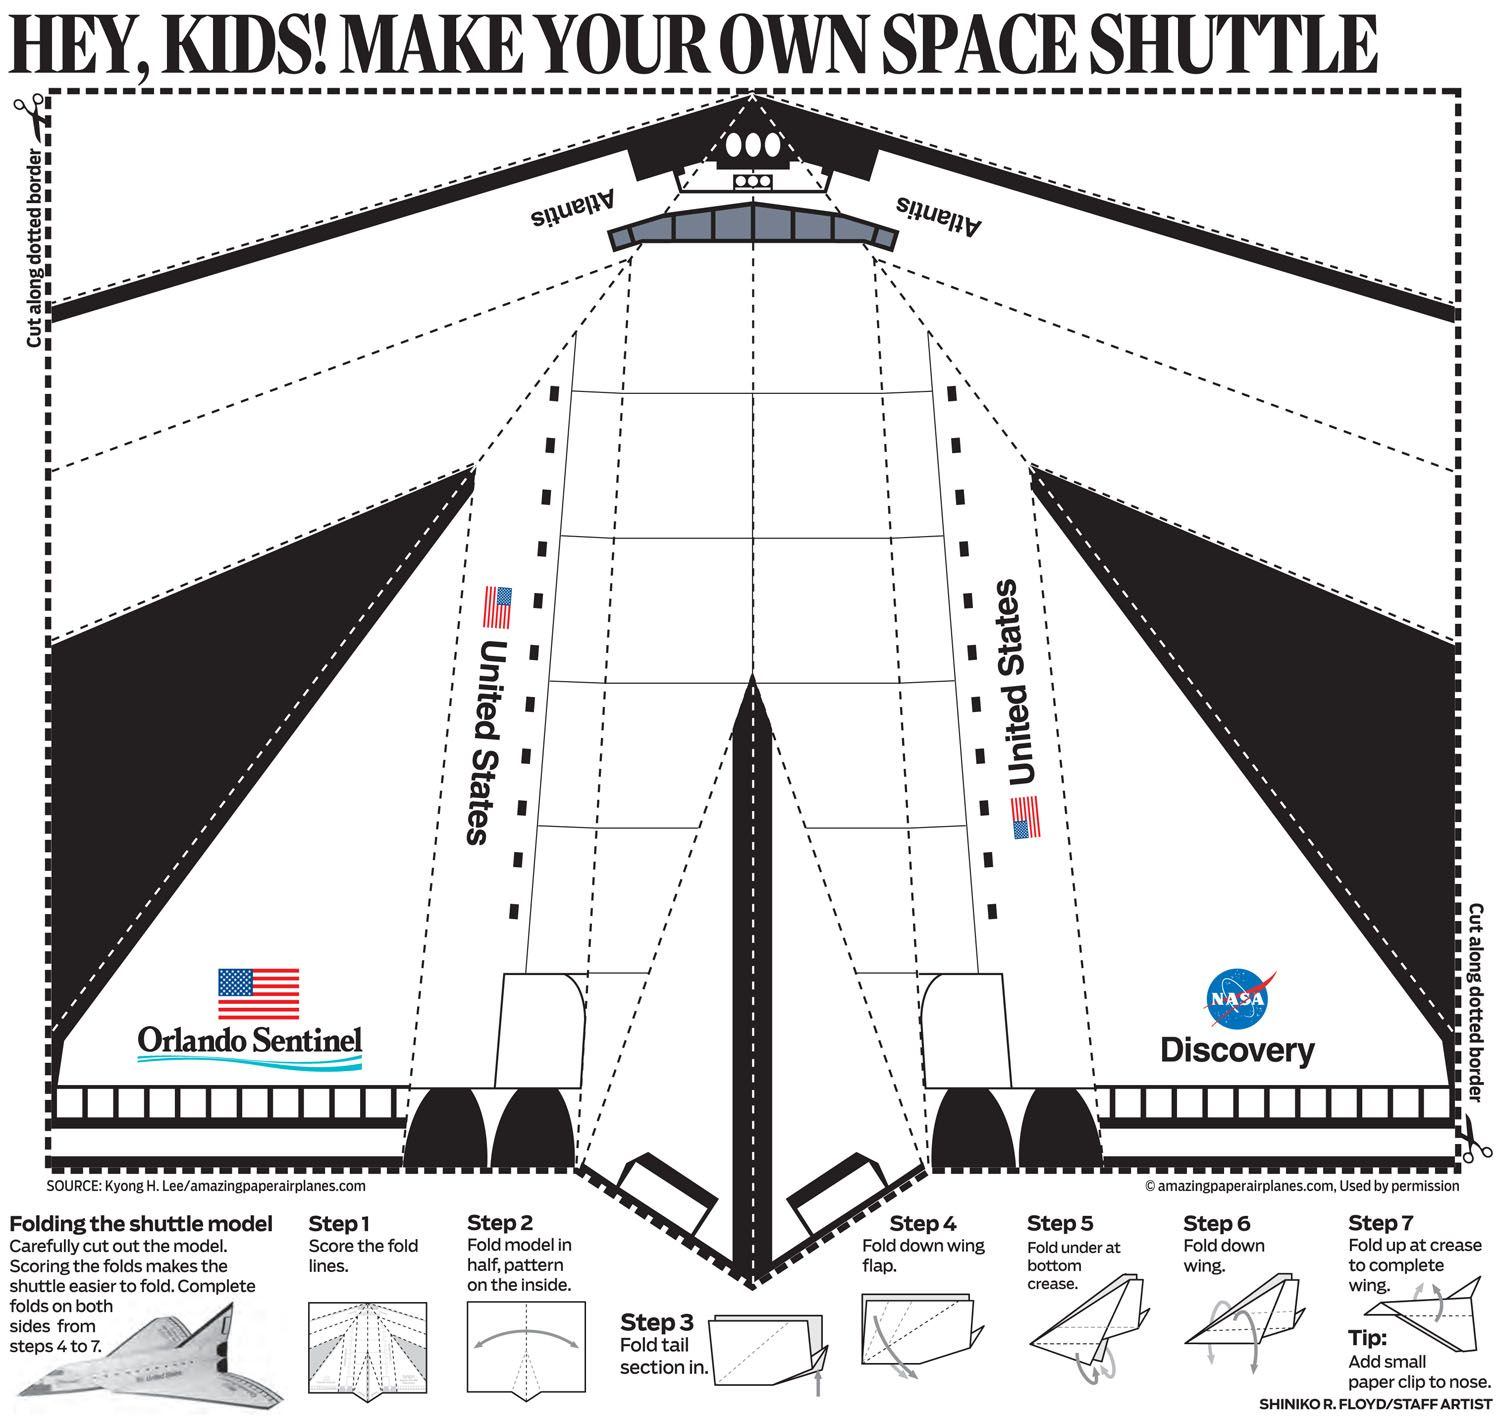 space shuttle essay - photo #29